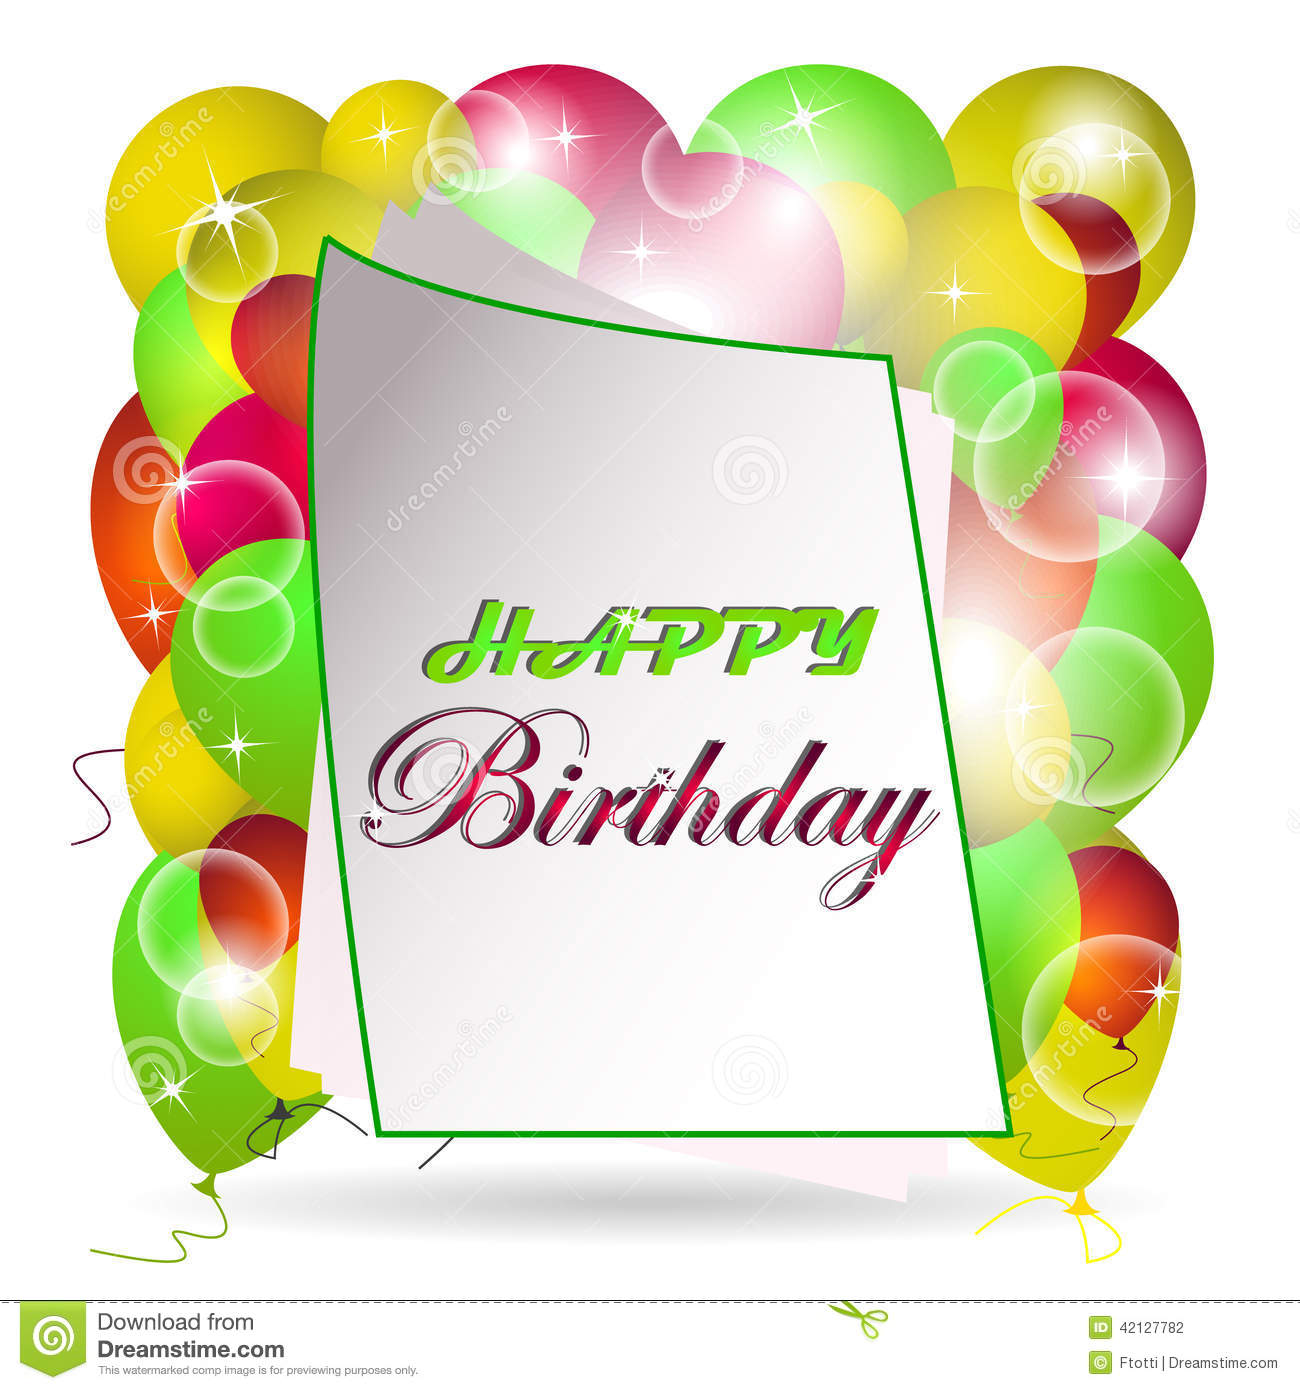 Happy Birthday Illustration, Card Stock Vector - Image: 42127782